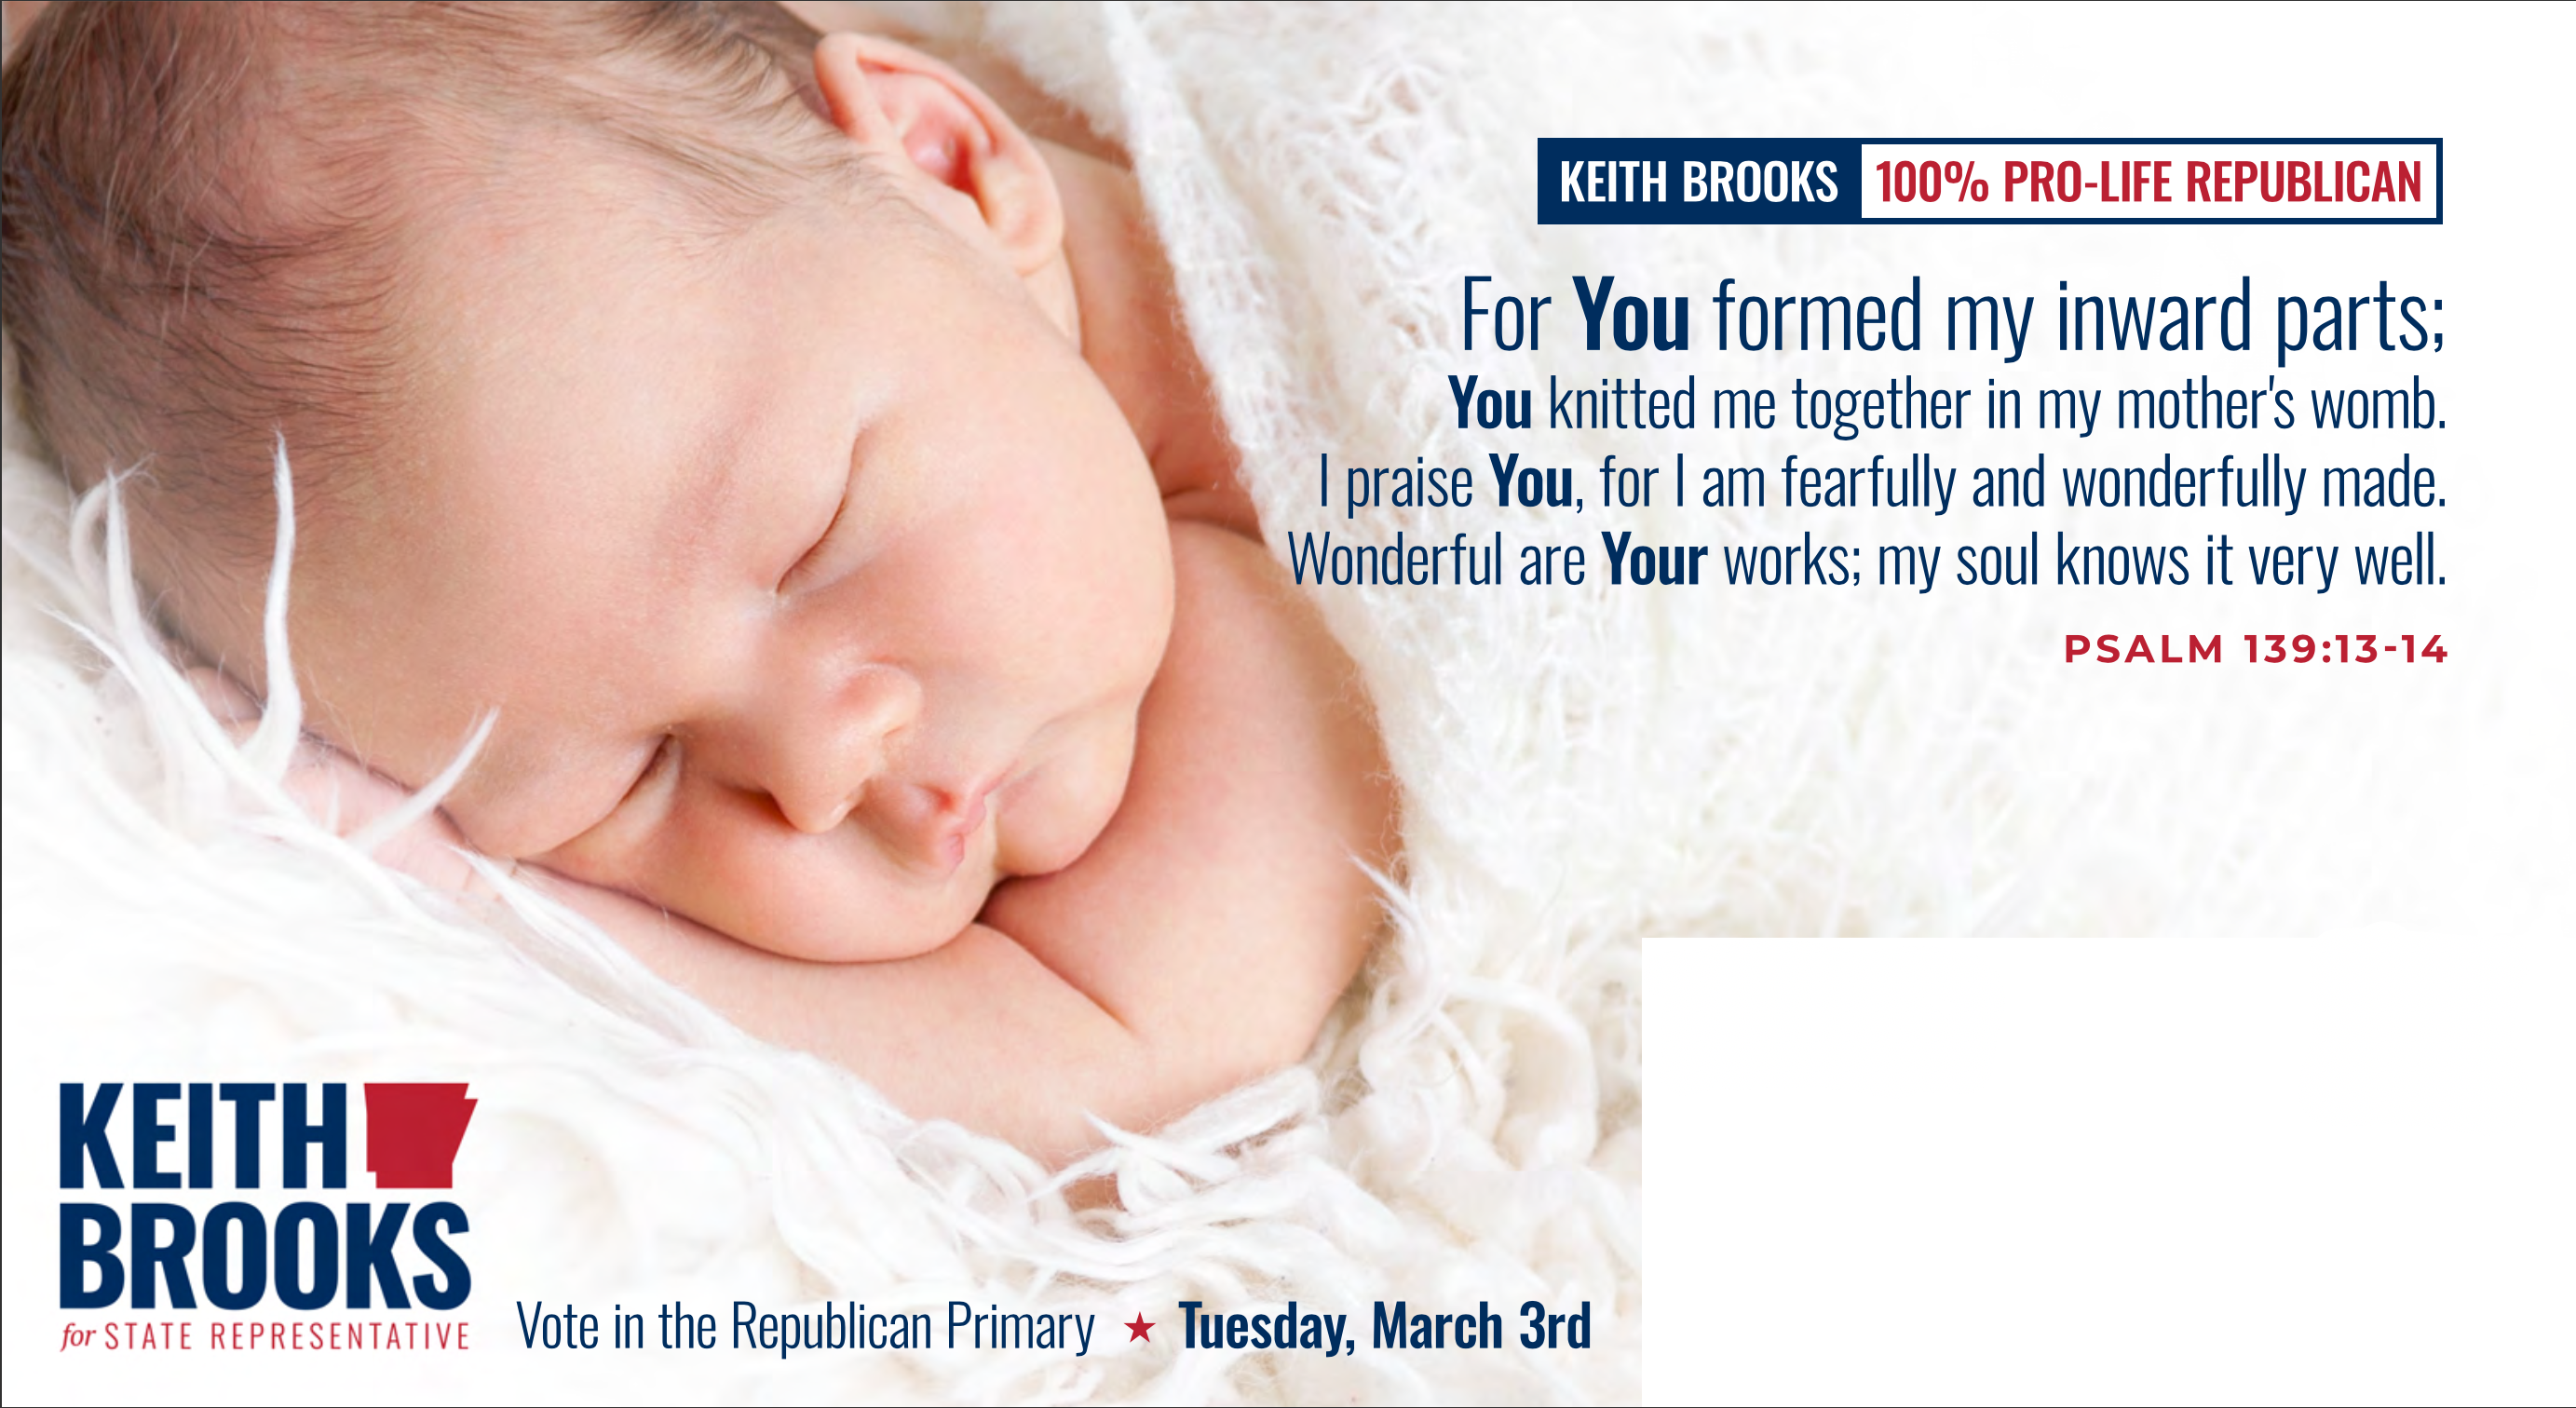 Pro-Life - Keith Brooks for State Rep